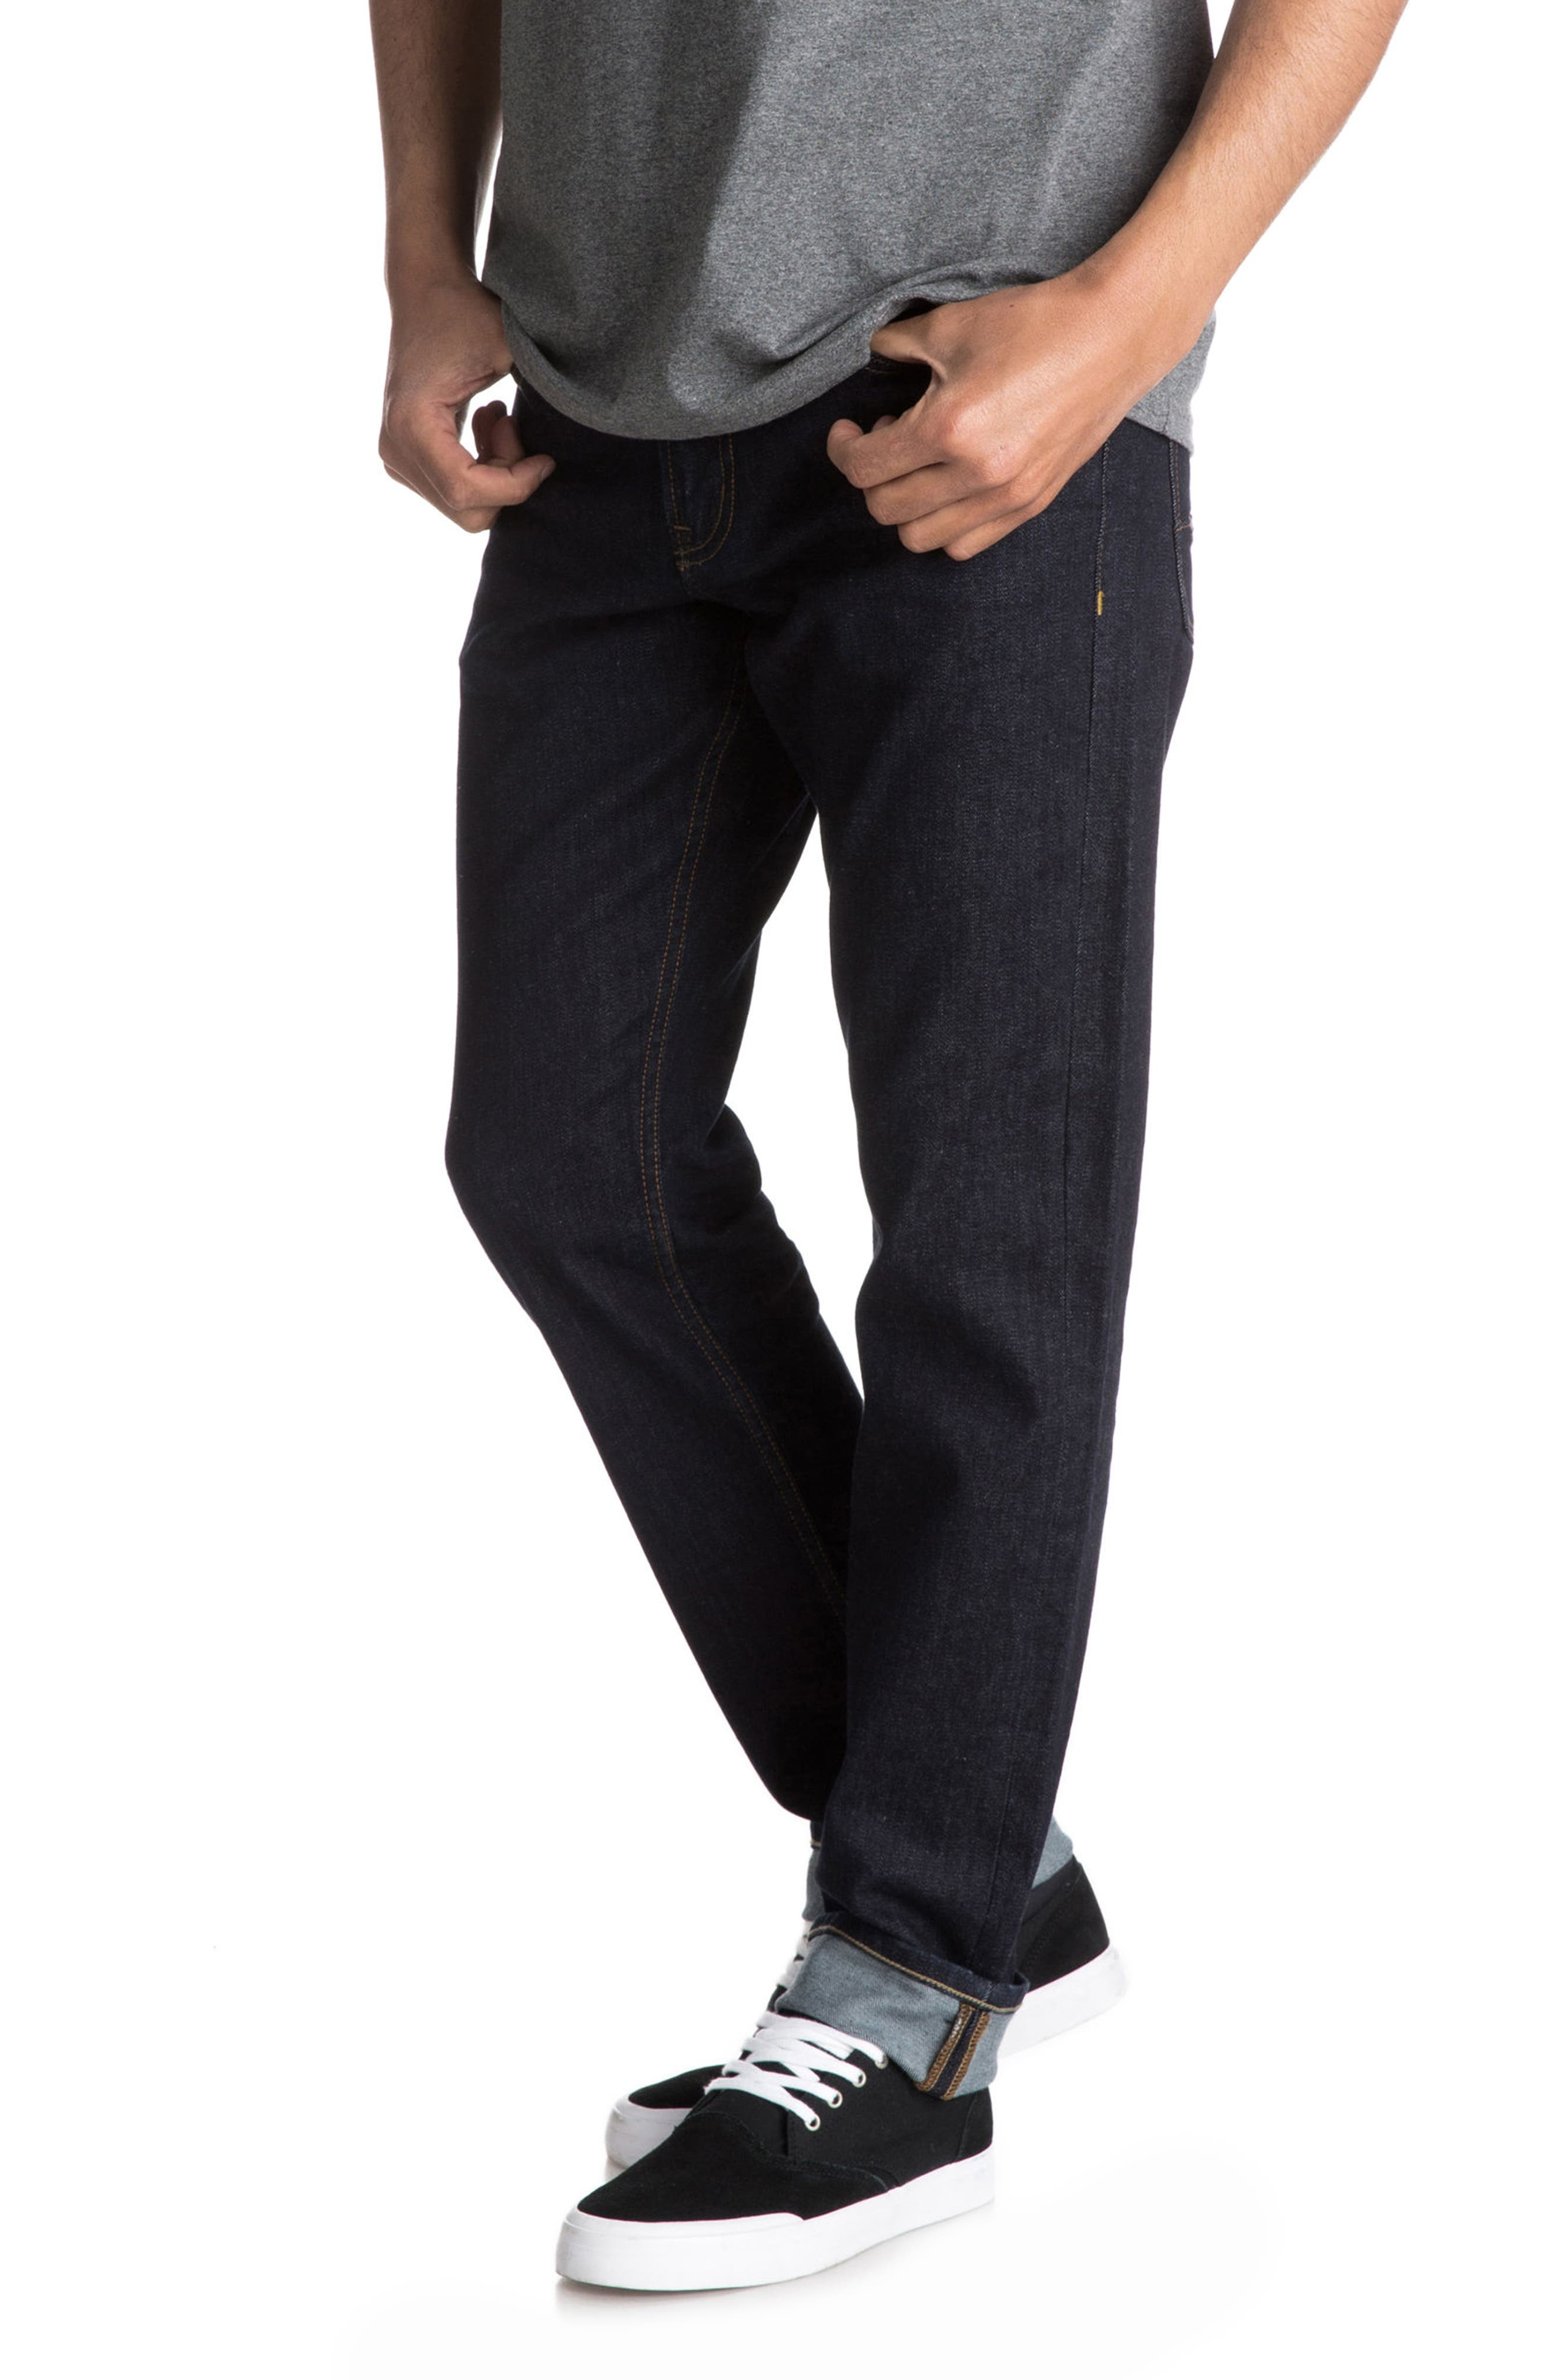 Revolver Slim Fit Jeans,                         Main,                         color, 401